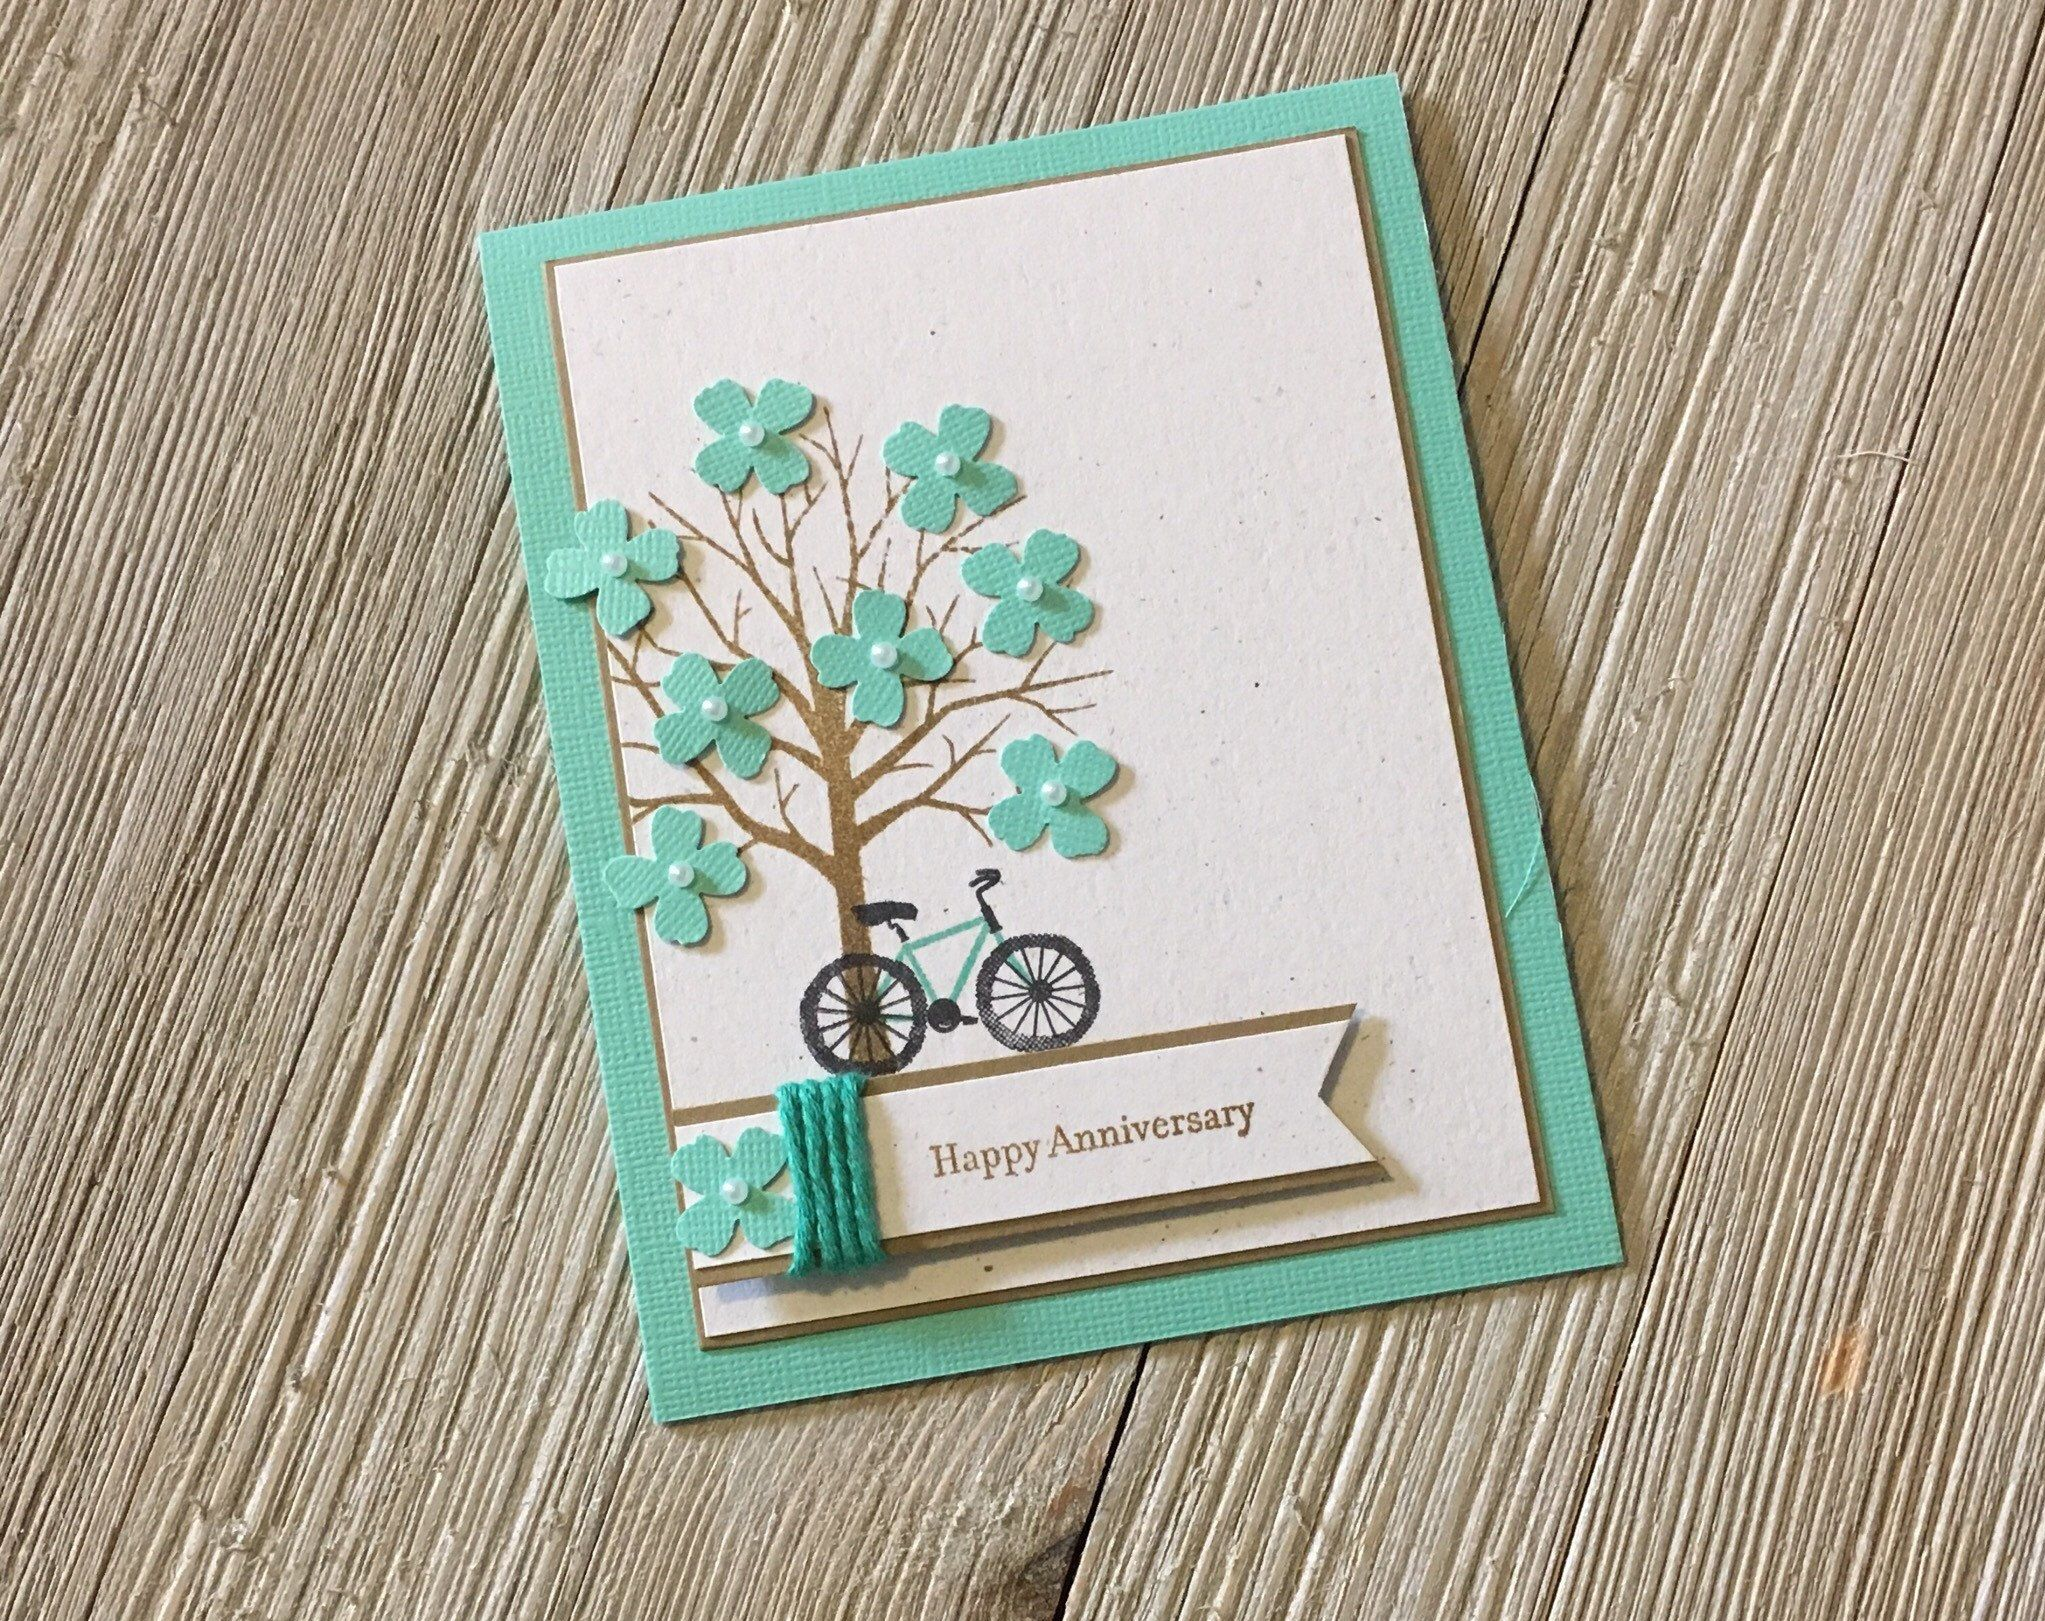 Thinking Of You Cards Newlywed Cards Anniversary Cards Handmade